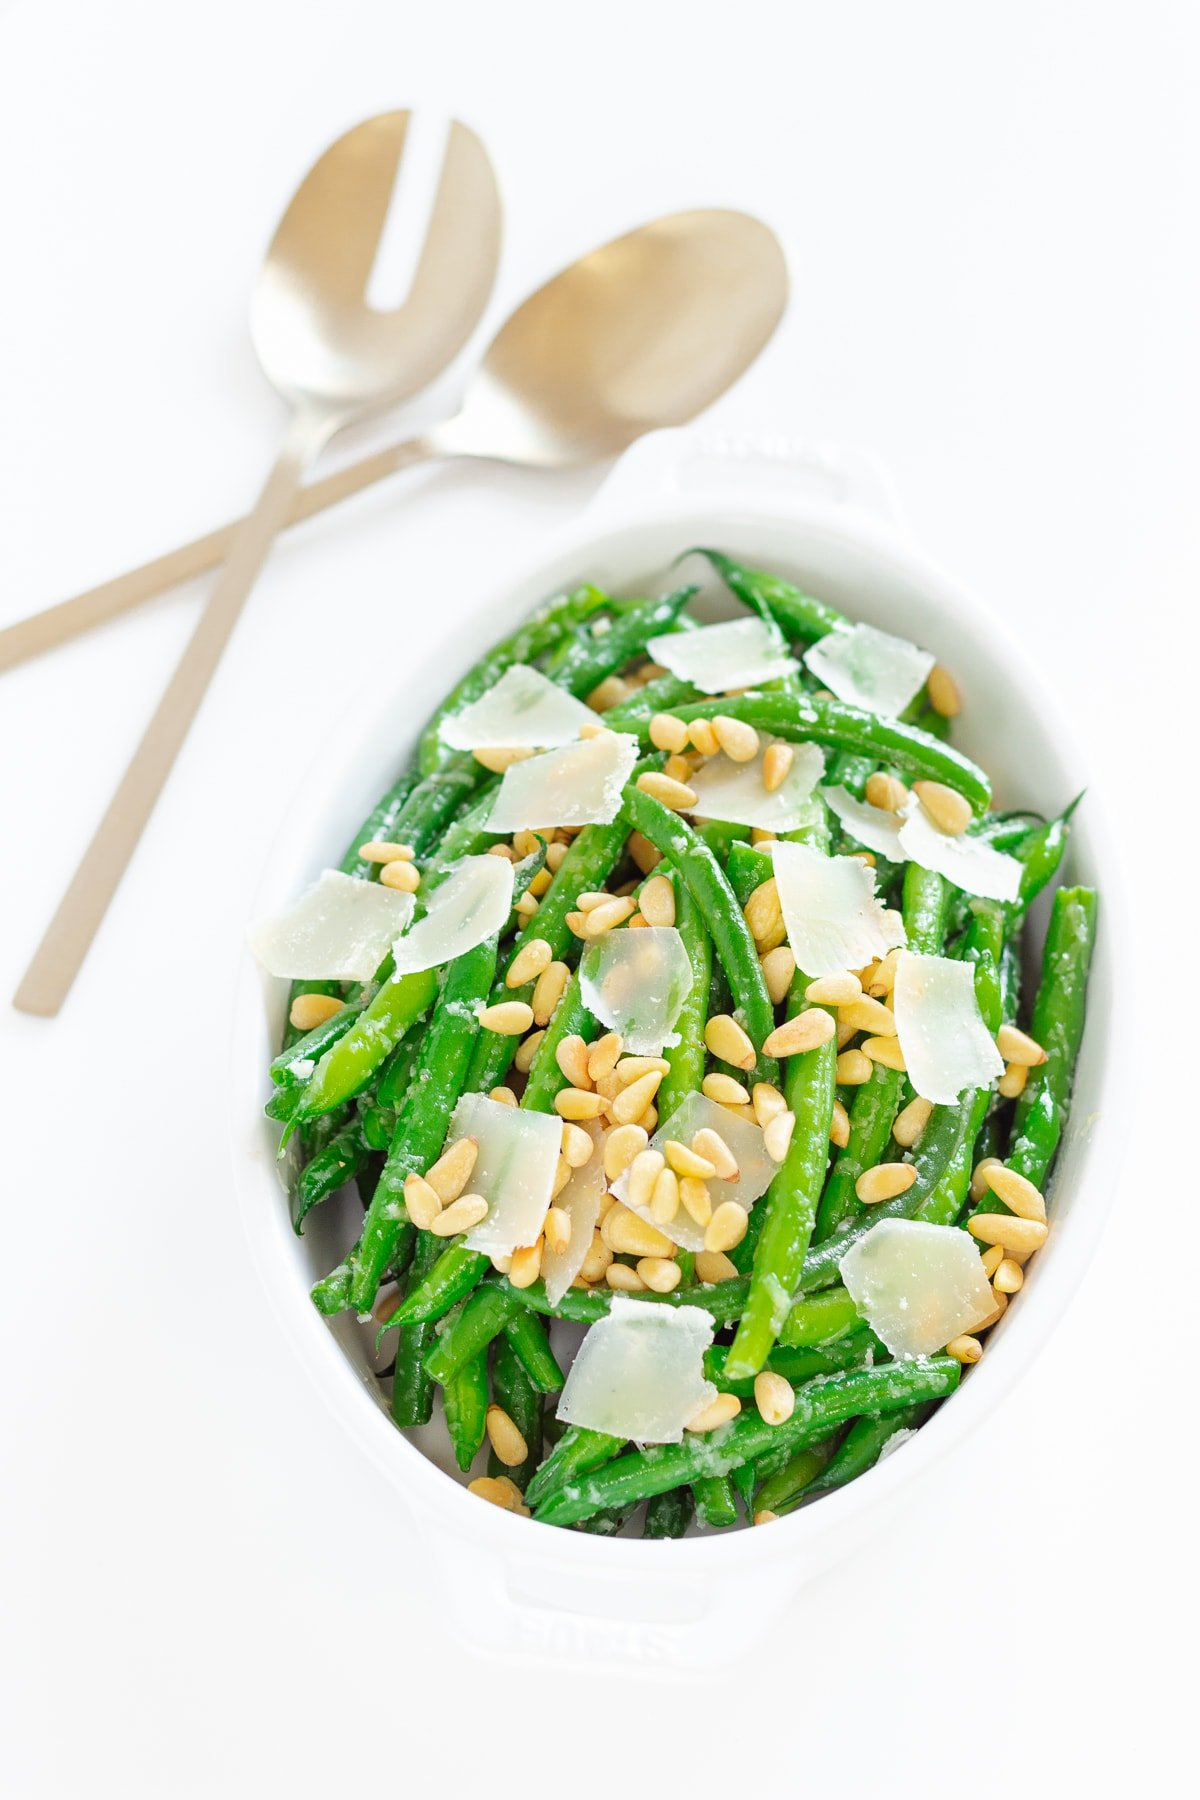 Dish of garlic butter green beans with gold serving spoons next to it.